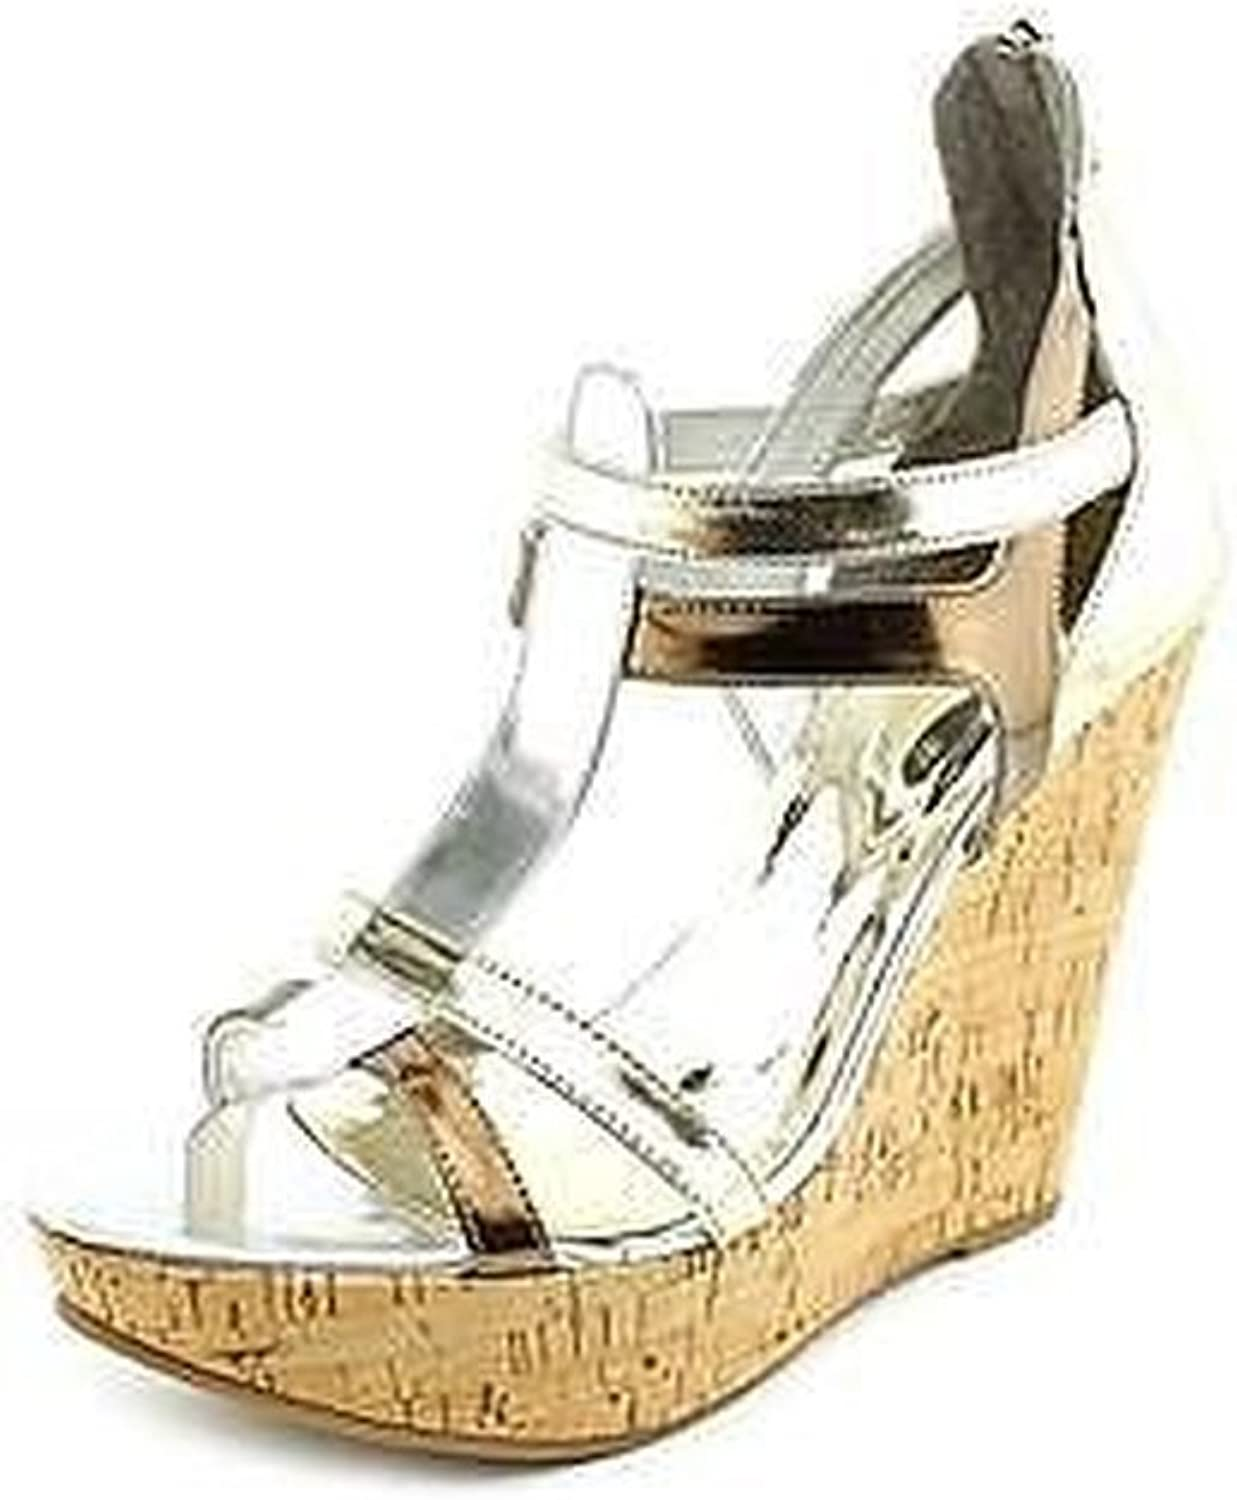 Carlos Santana Betzy Womens Size 10 Silver Wedge Sandals shoes